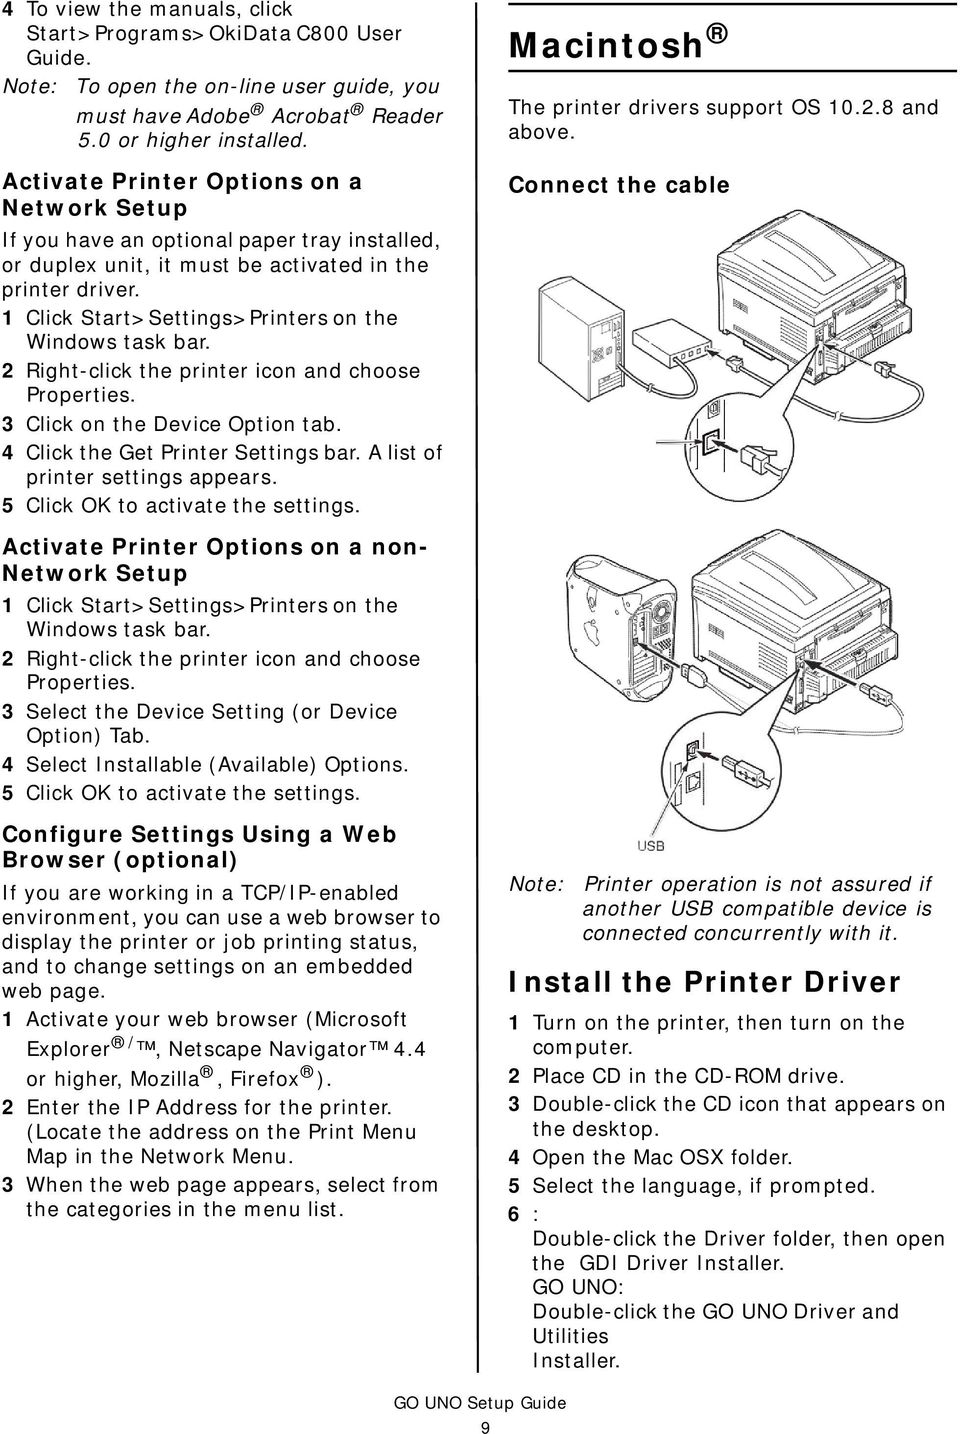 1 Click Start>Settings>Printers on the Windows task bar. 2 Right-click the printer icon and choose Properties. 3 Click on the Device Option tab. 4 Click the Get Printer Settings bar.